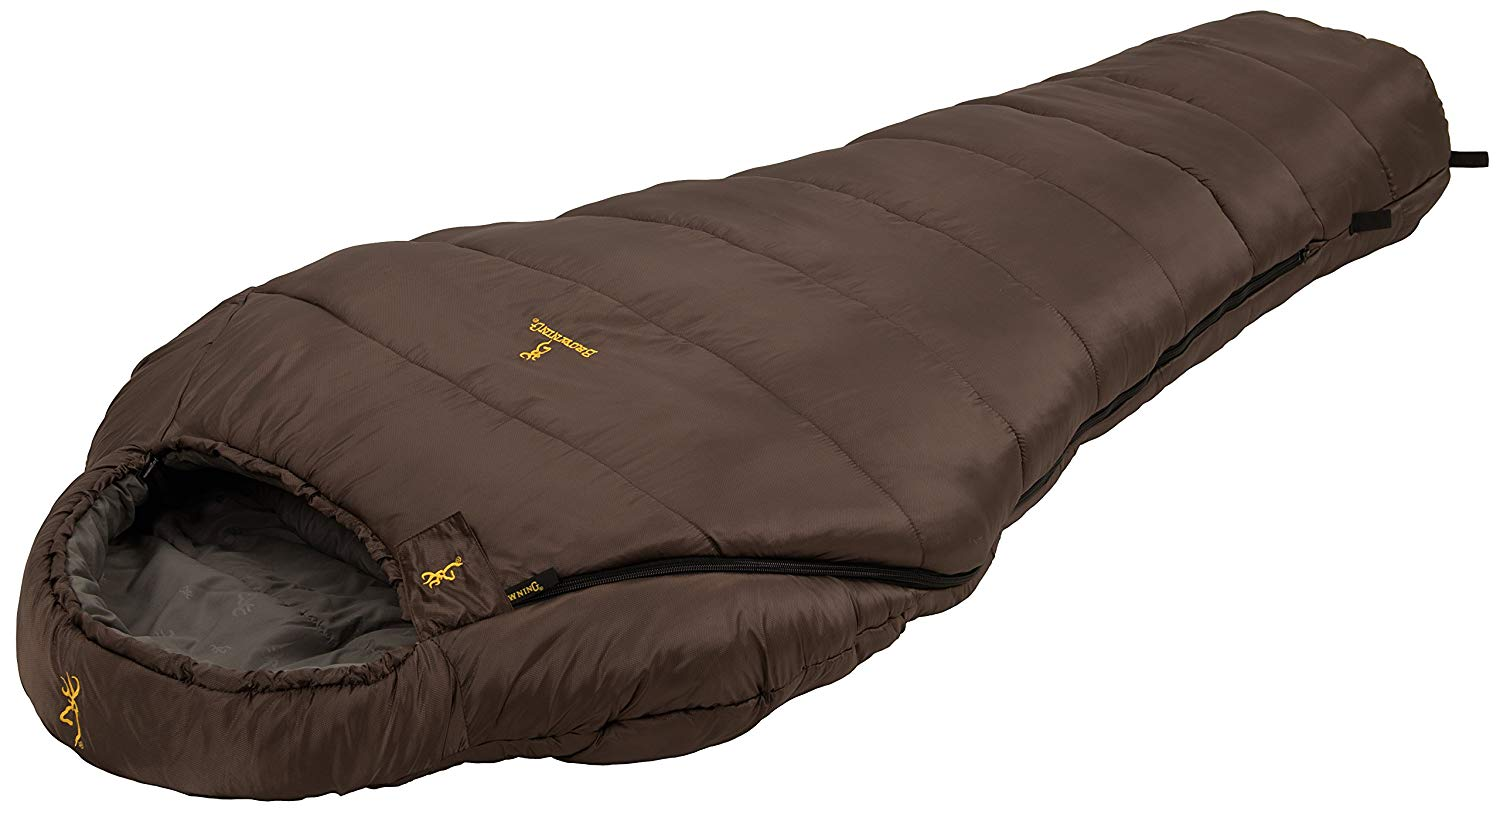 An image of Browning Kenai 4837117 10 Degree Microfiber Sleeping Bag